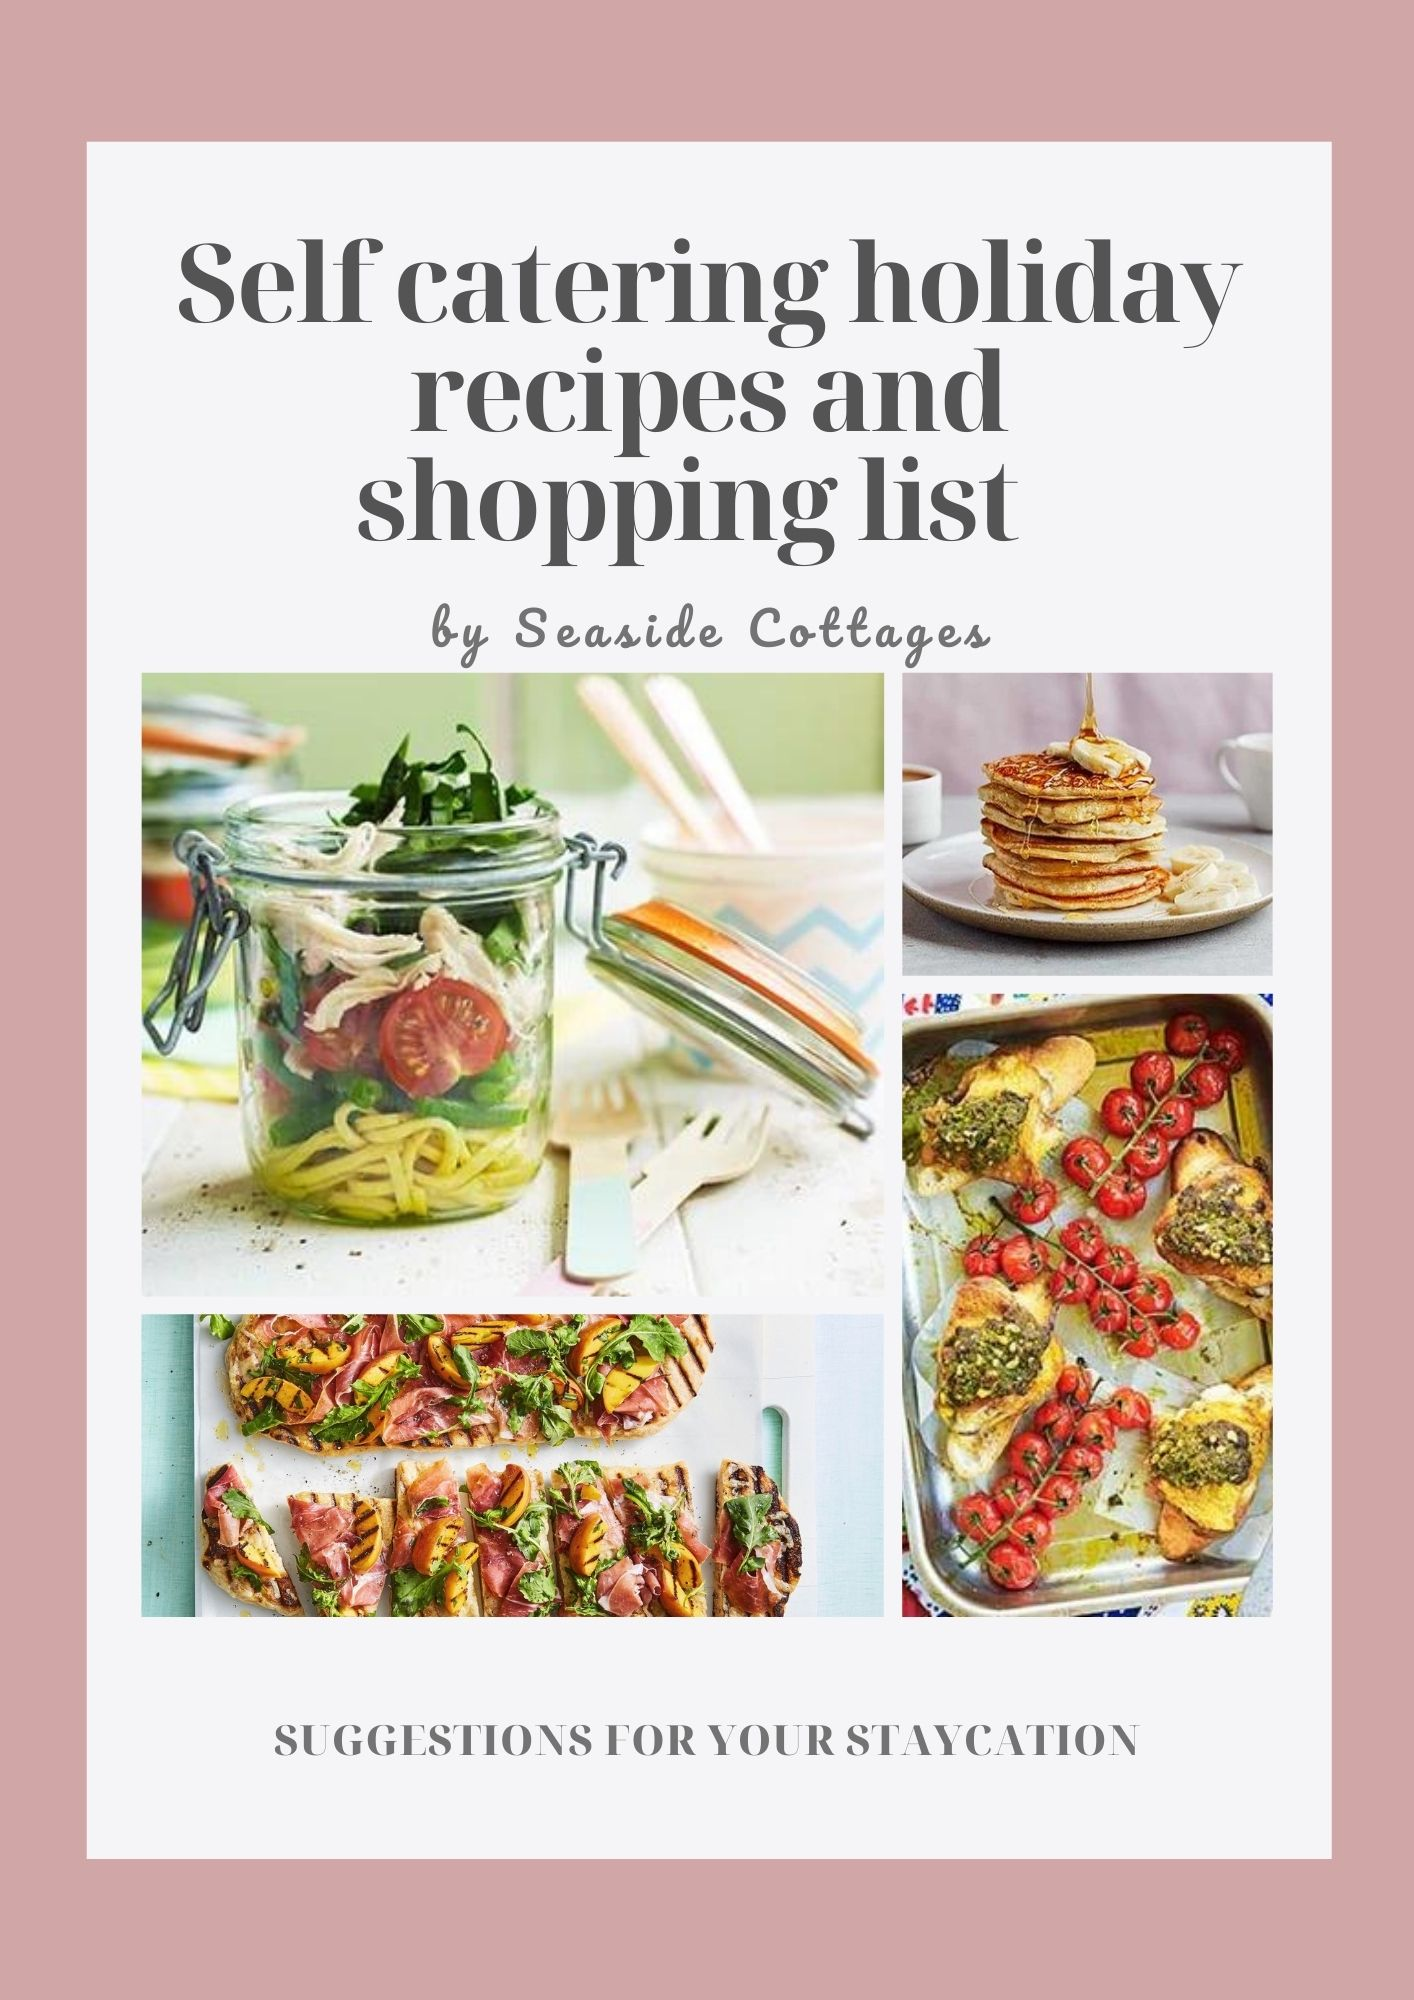 Self catering holiday recipes